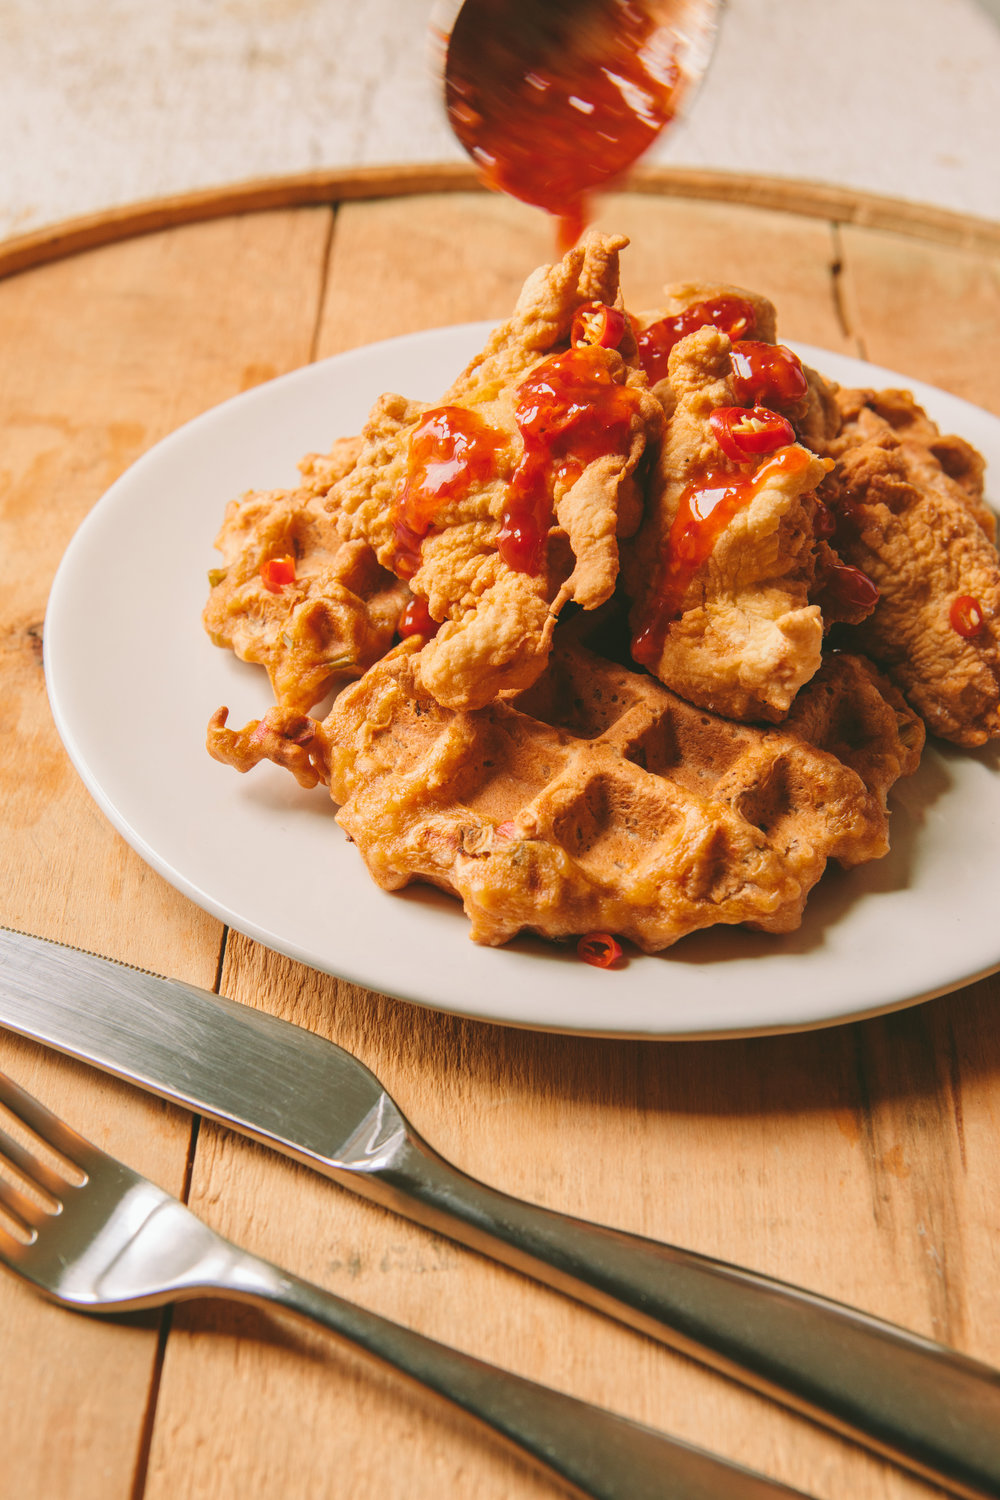 The Art of the Mashup_General Gau Chicken and Pork Fried Waffles_Brian Samuels Photography_January 2017-8878.jpg